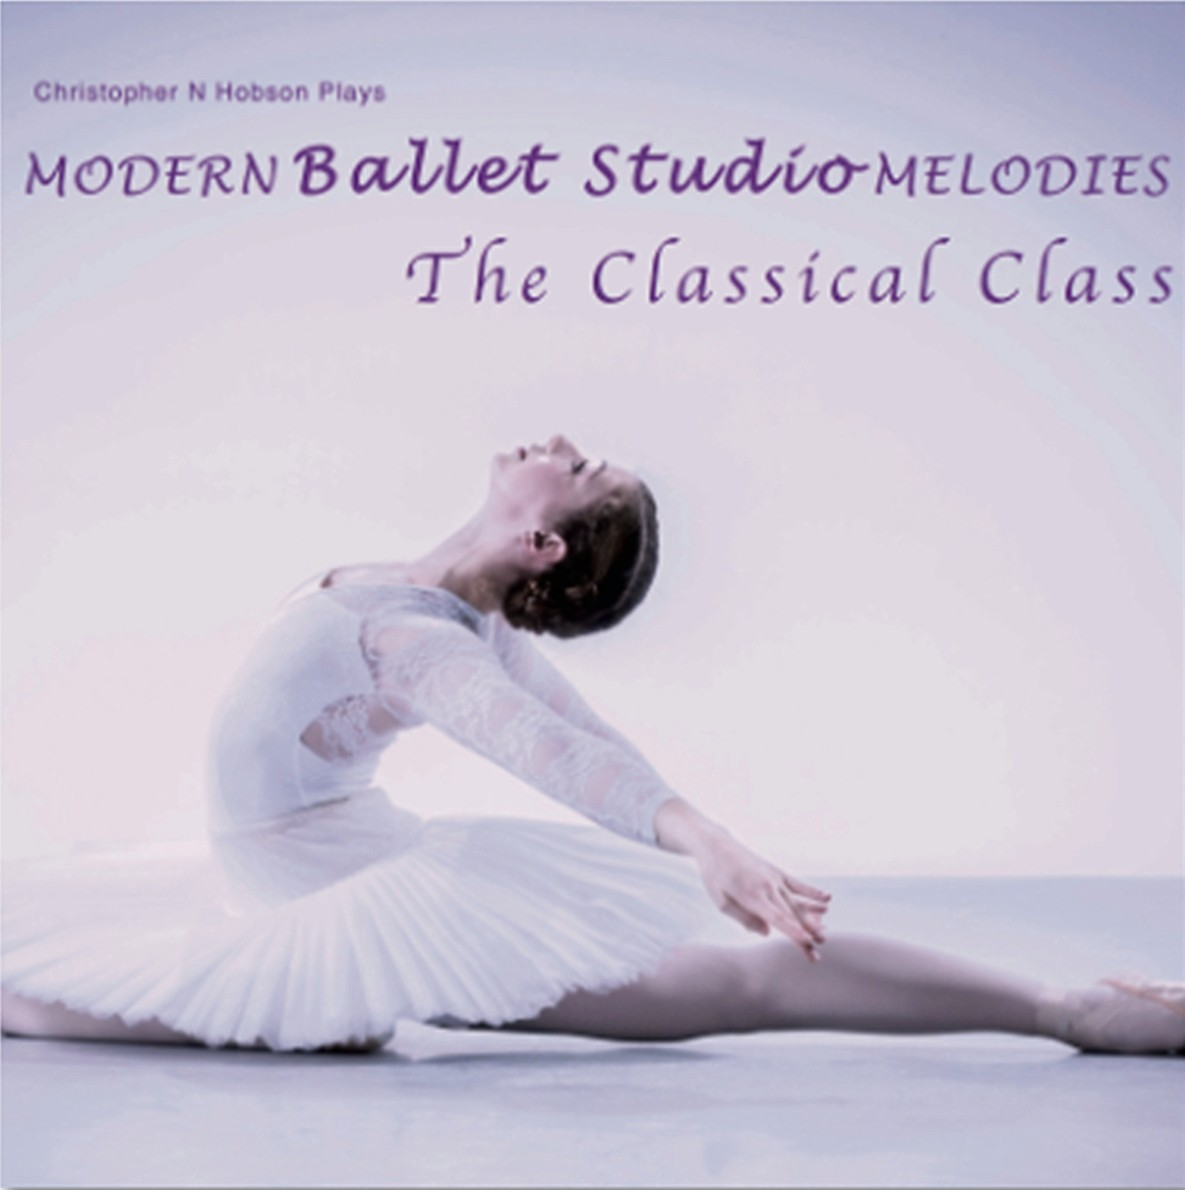 Cd review modern ballet studio melodies the classical class for Modern image studios reviews